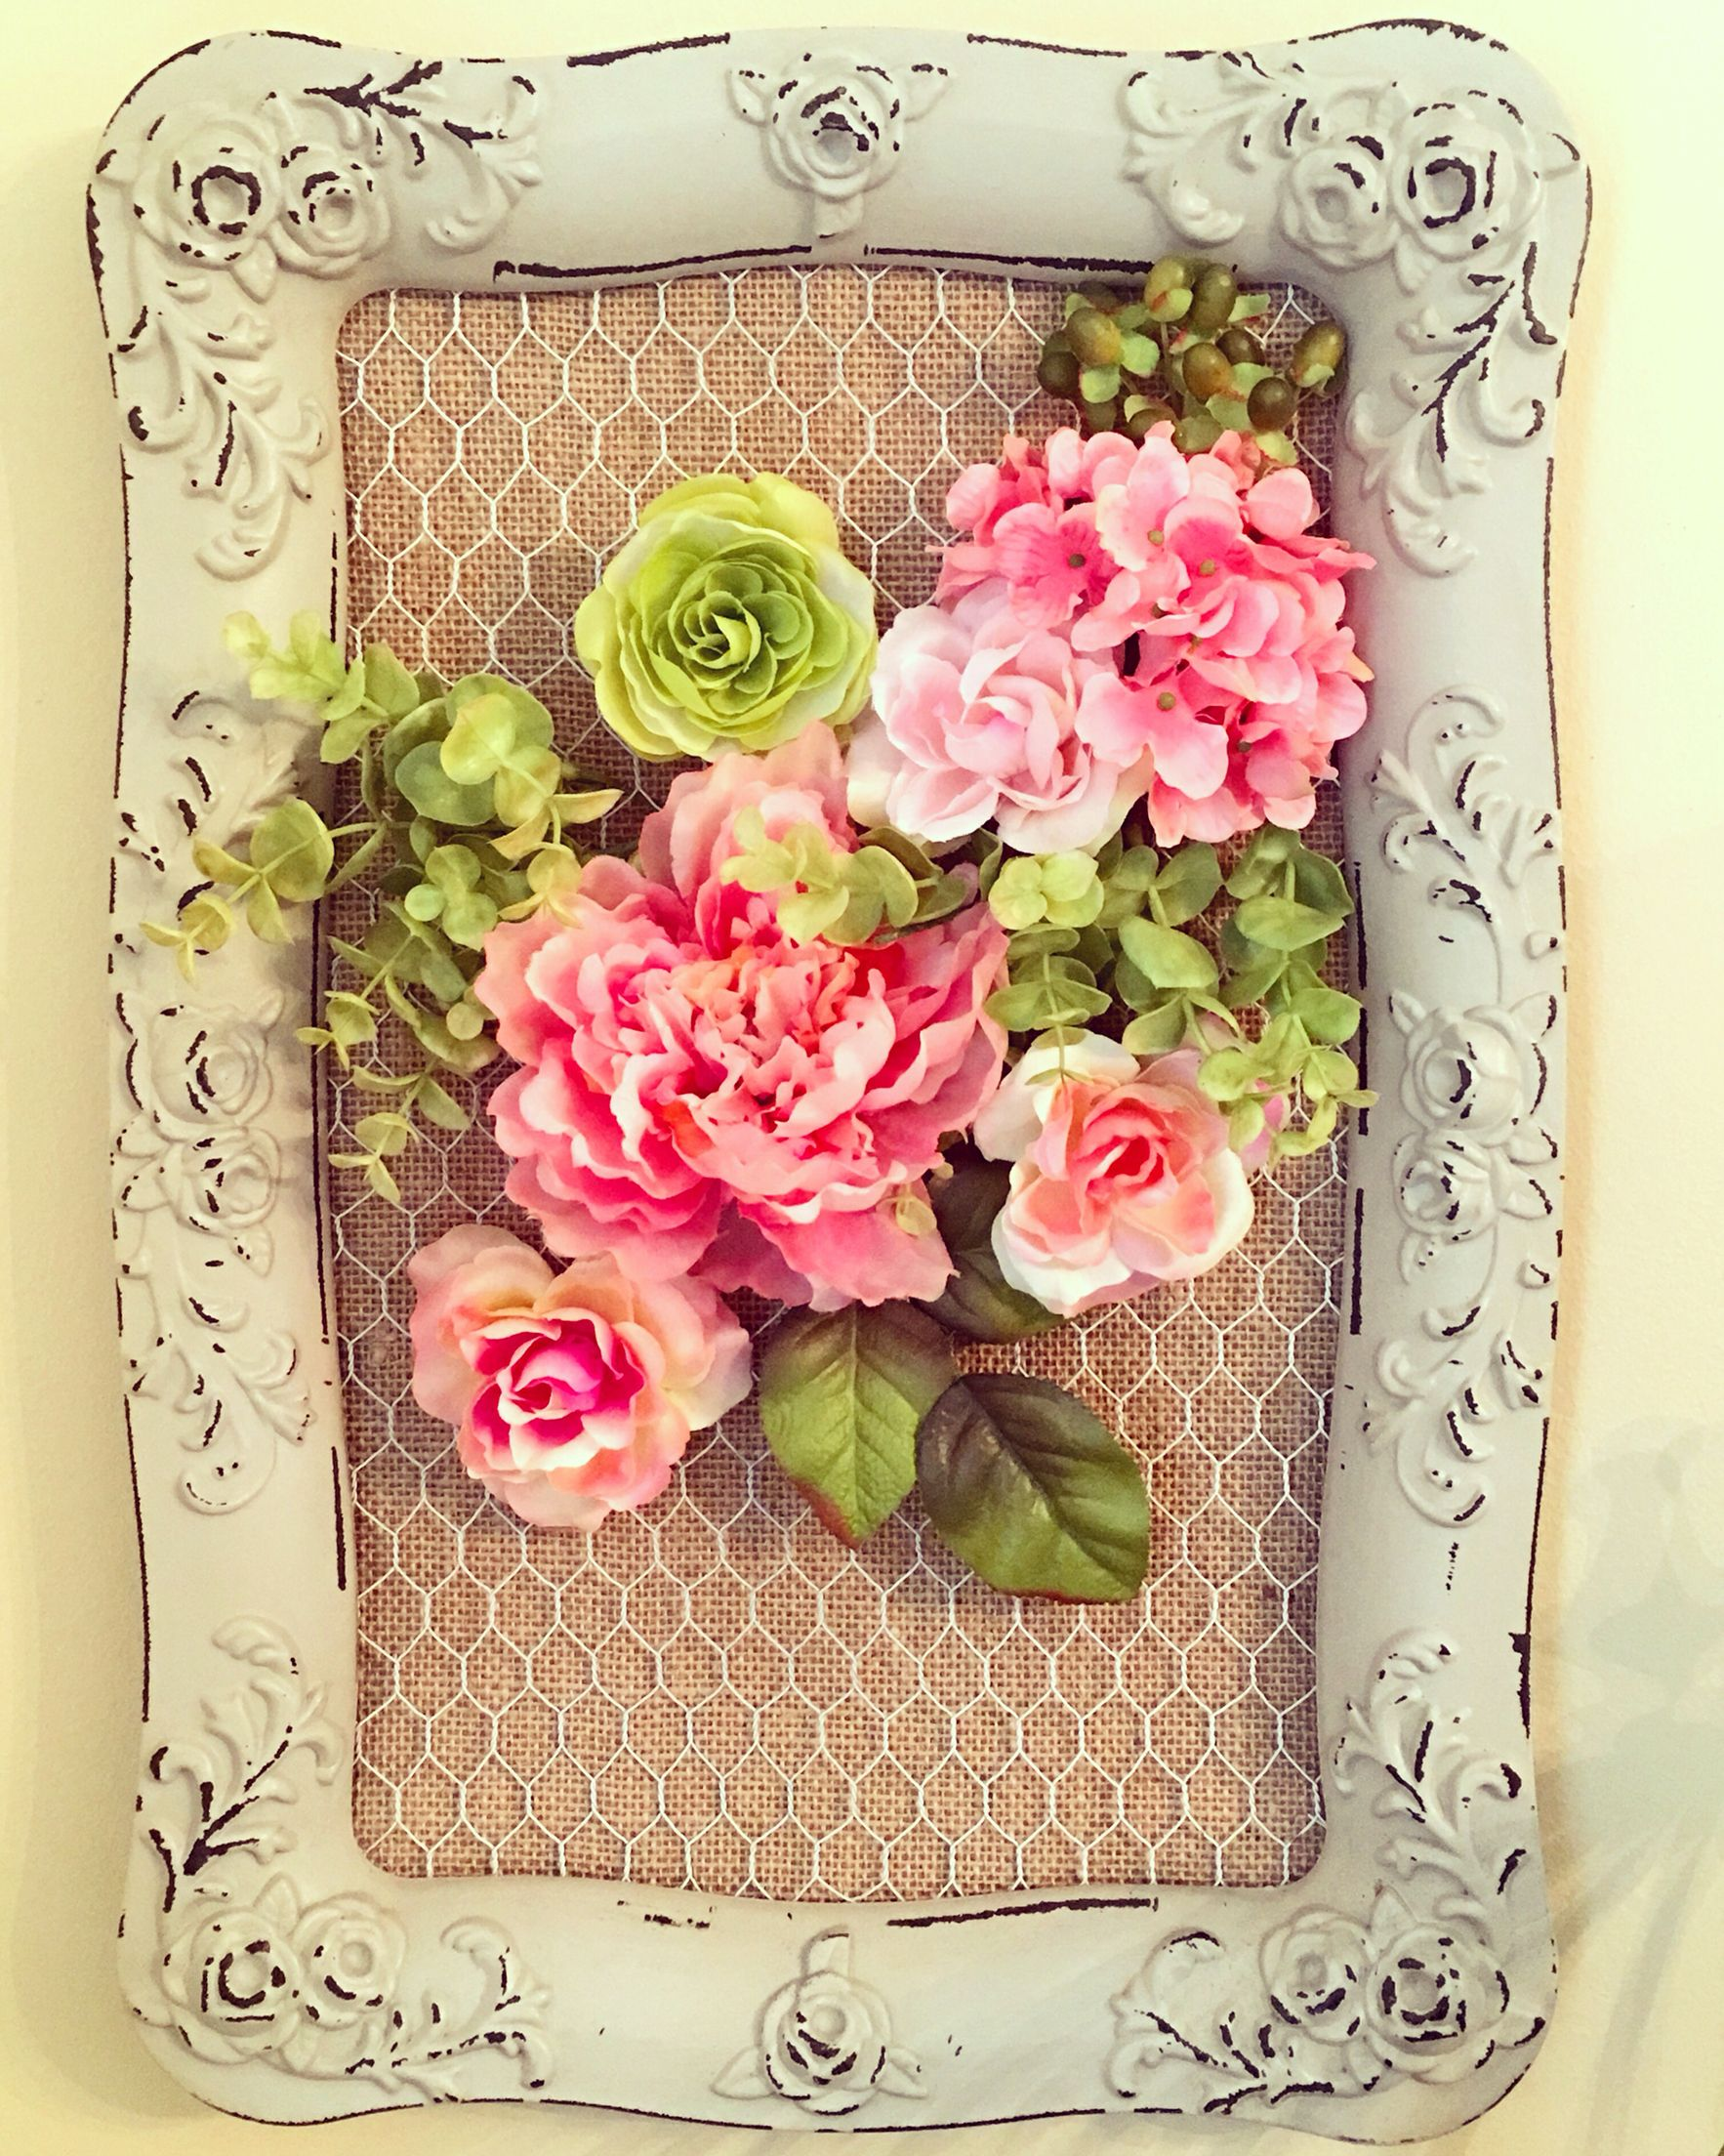 Create your own flower bouquet in this chicken wire frame create your own flower bouquet in this chicken wire frame more jeuxipadfo Choice Image